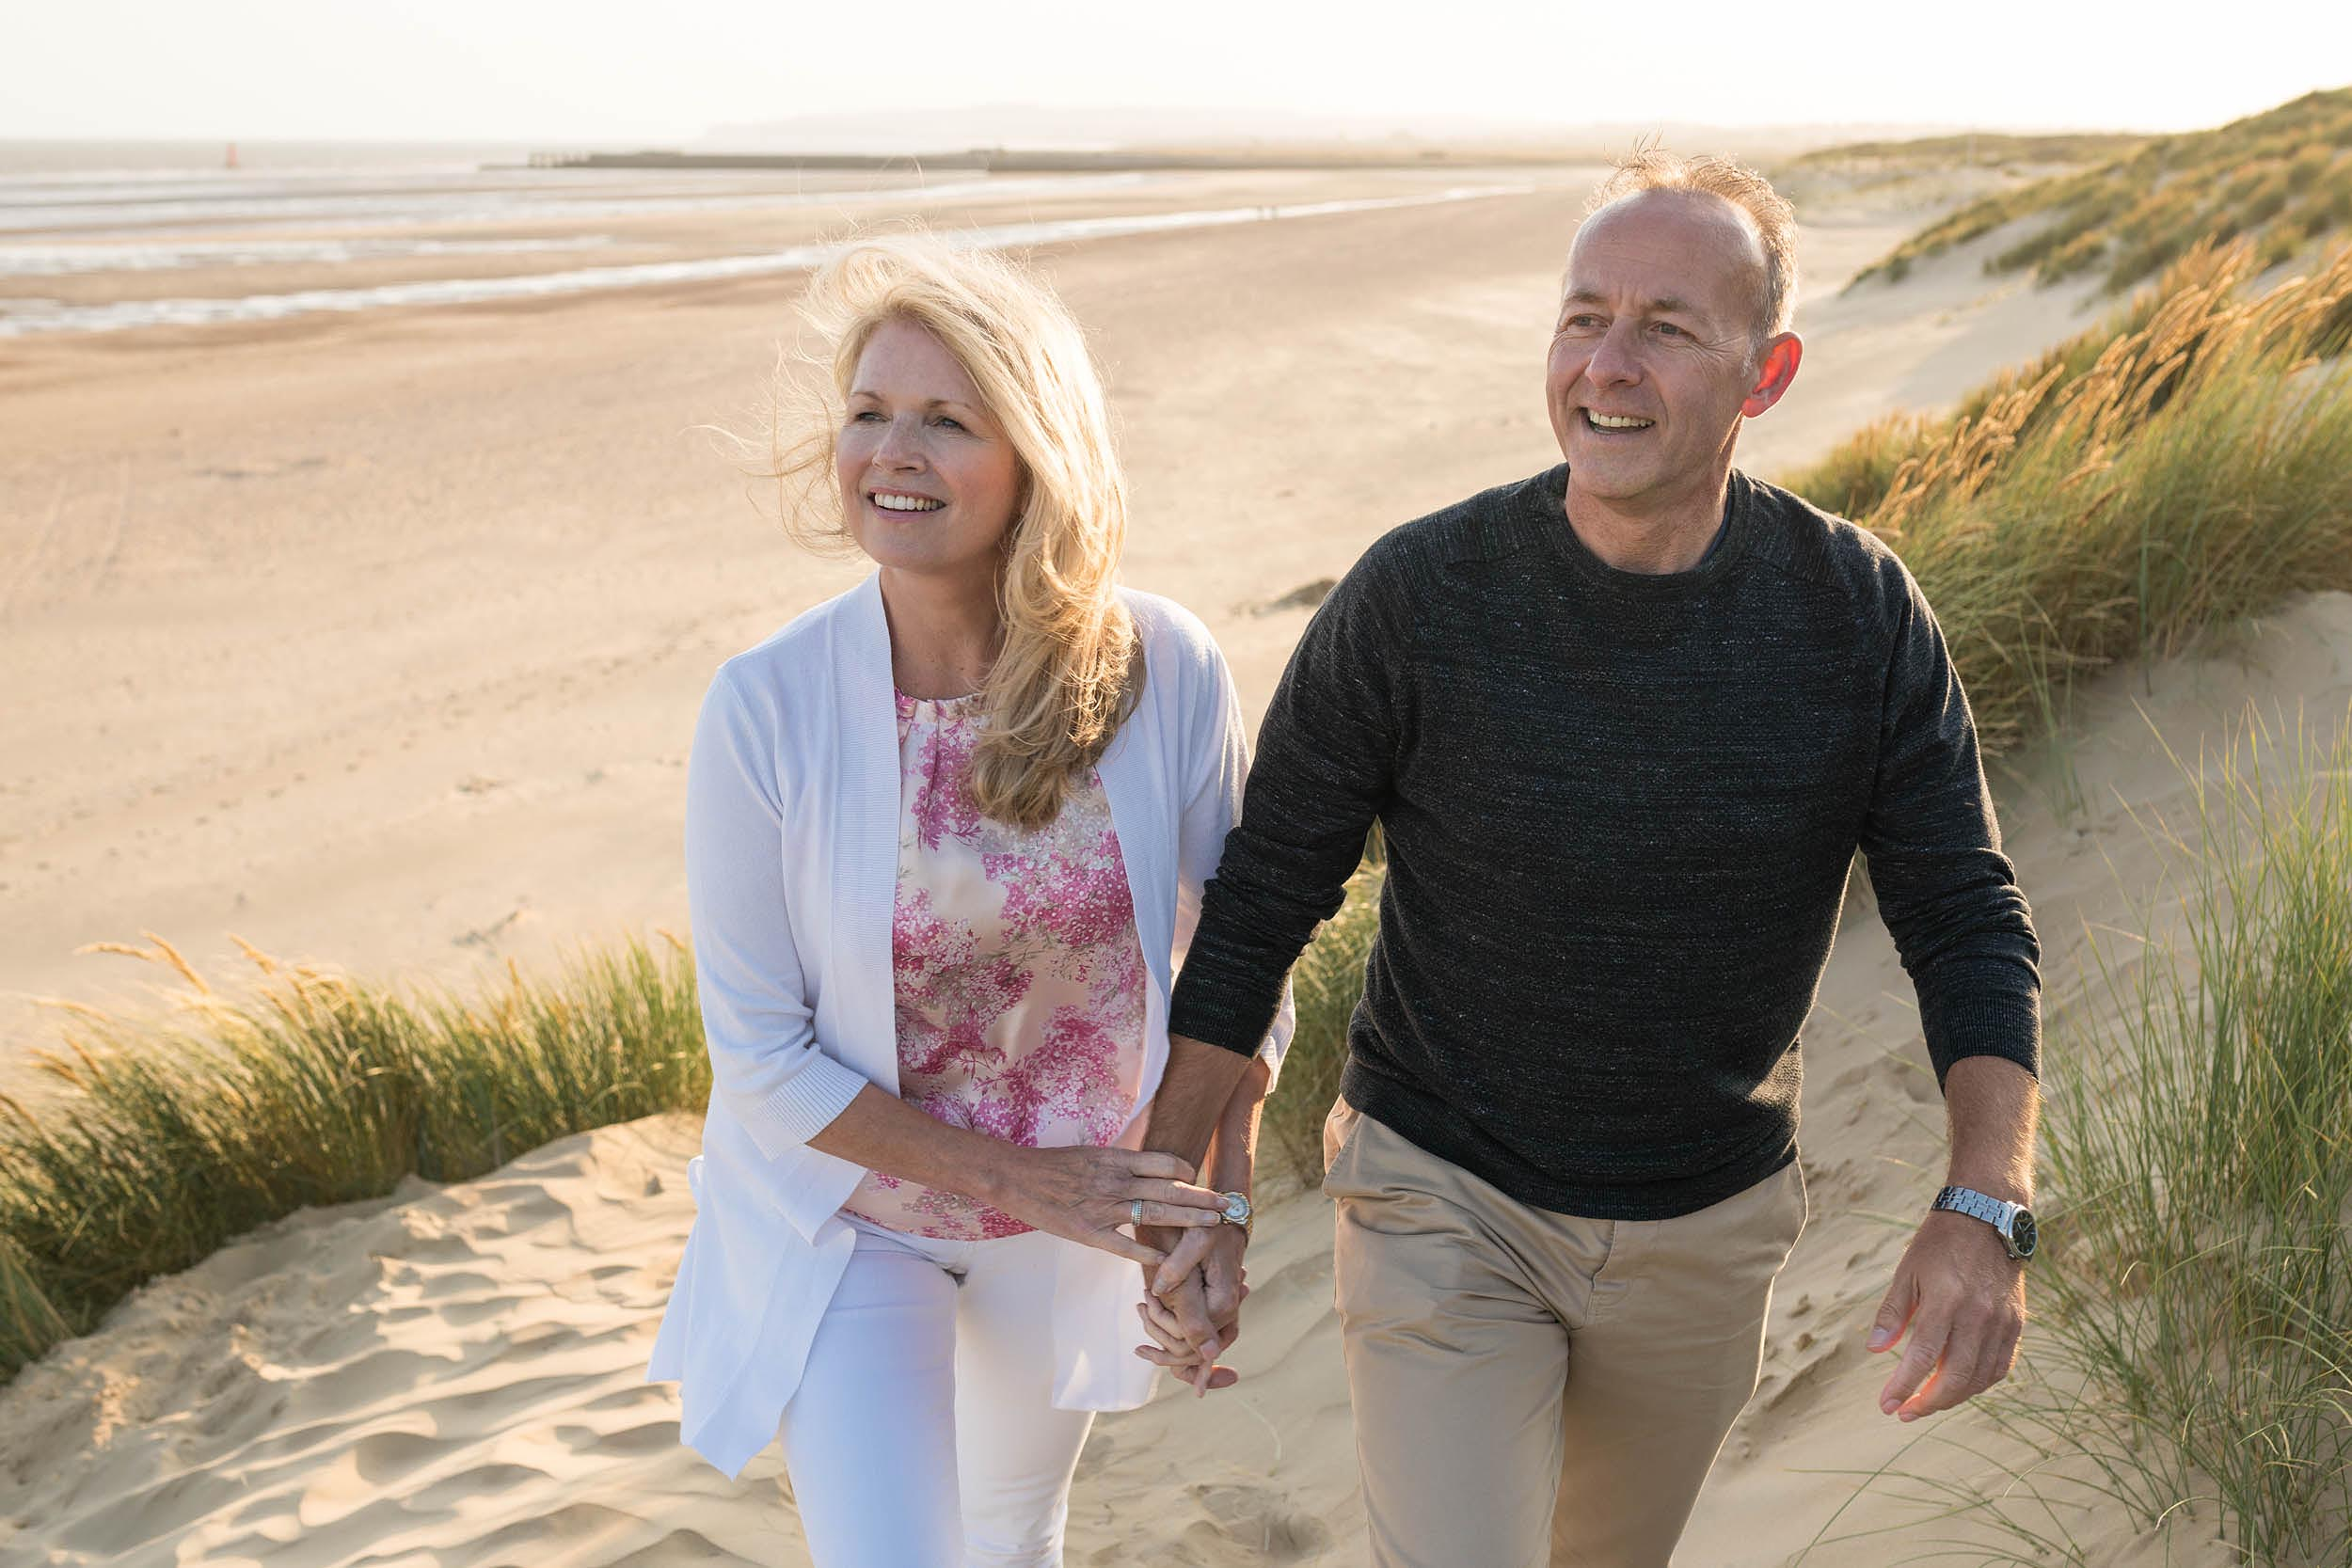 senior-lifestyle-photography-shoot-couple-holiday-beach-vacation-kent-uk